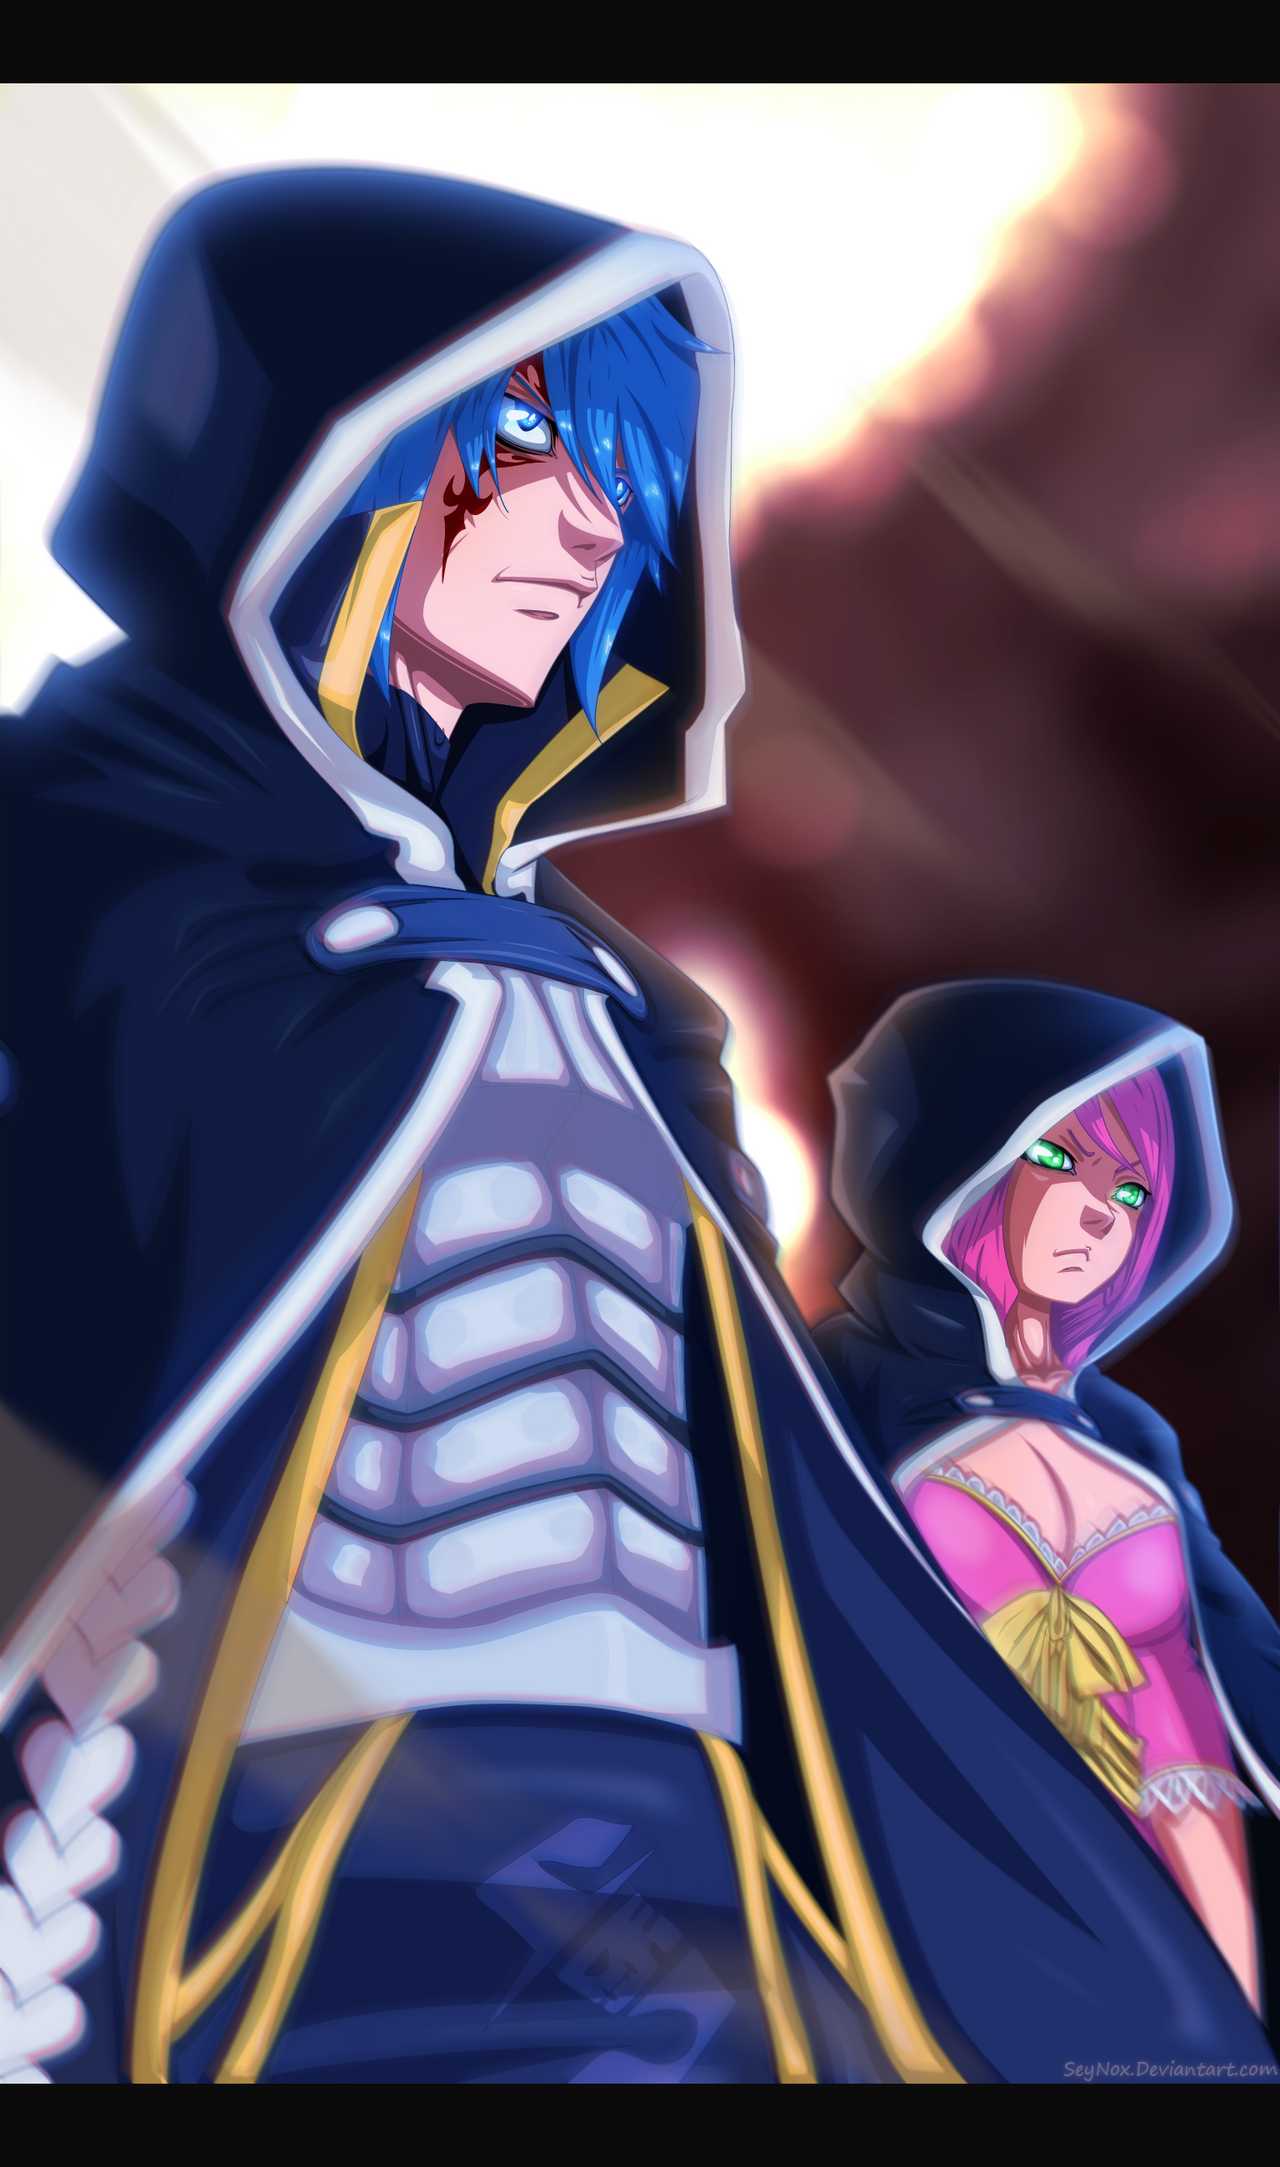 Fairy Tail - Jellal and Meredy by SeyNox on DeviantArt